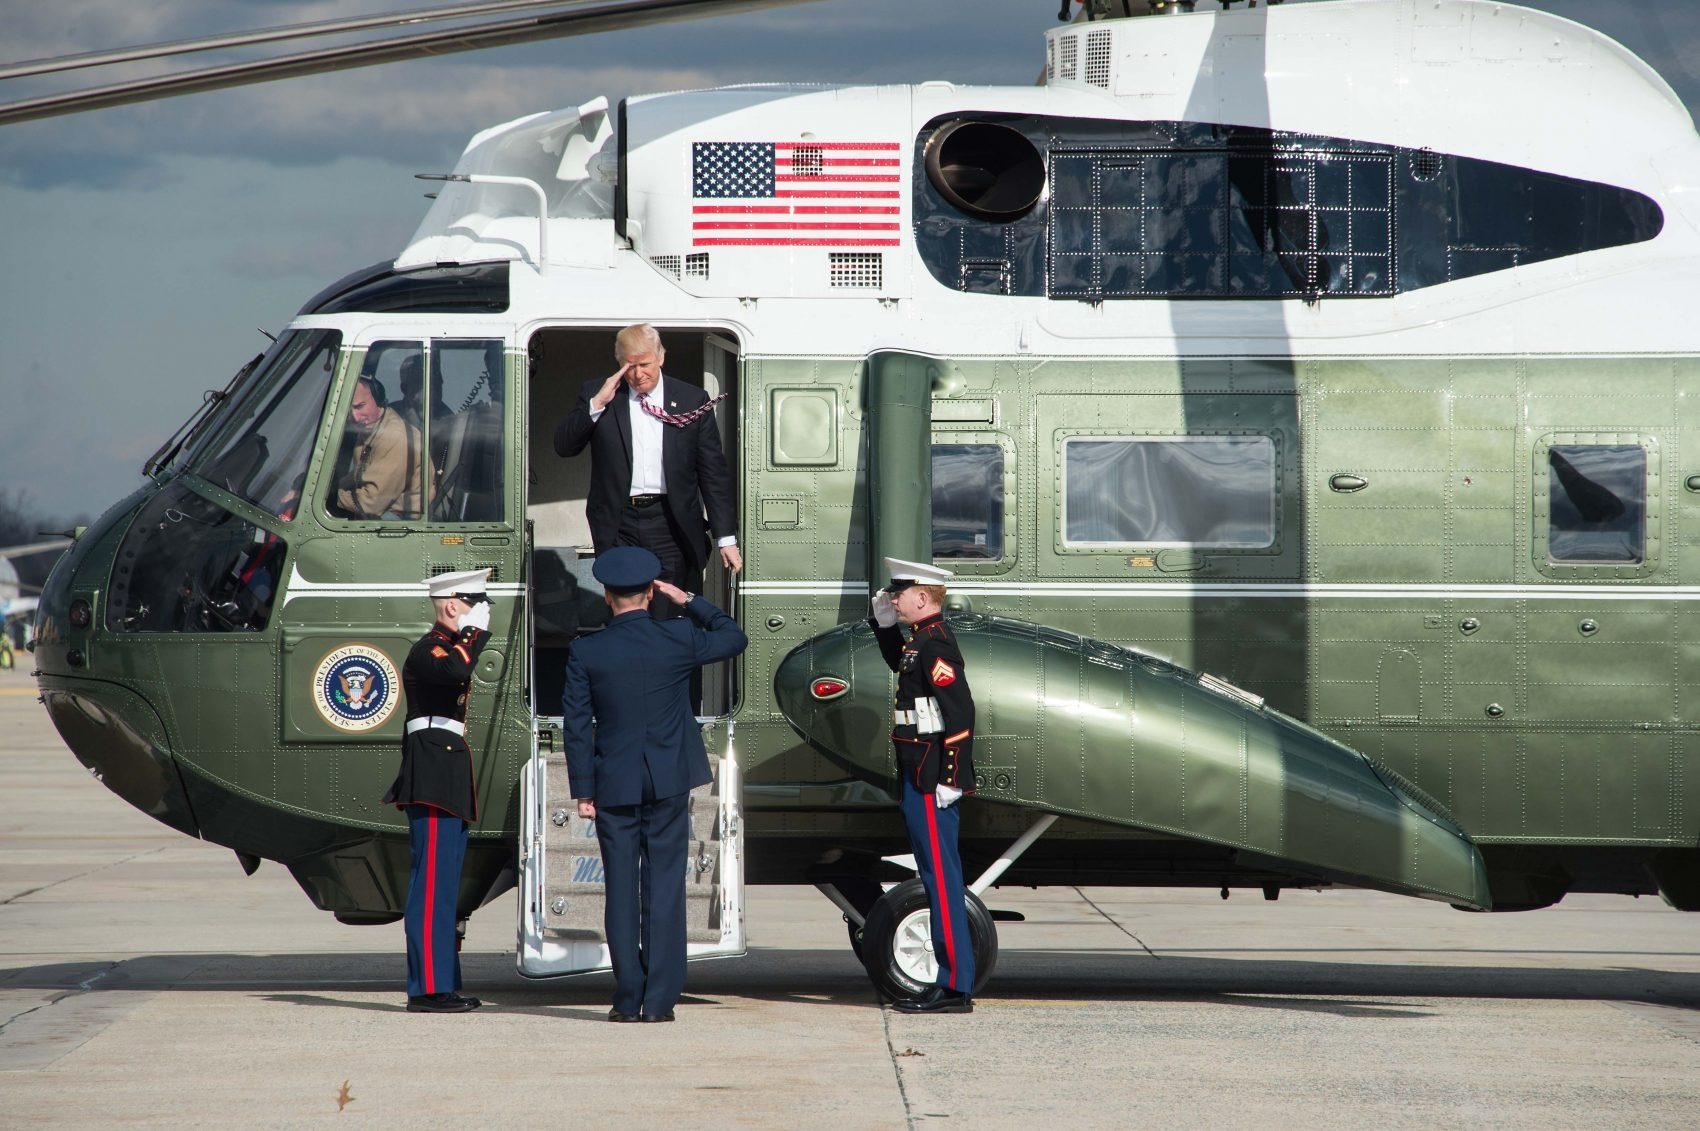 russian presidential helicopter with Report Trump Associates Negotiate Peace Plan Ukraine on Private Jet Interior Designers besides John F Kennedy Anniversary A Look At Images From His Lifetime together with Charts Of The Us Air Force 2015 8 furthermore Mi 10 in addition President Obamas Presidential Limousine The Beast.